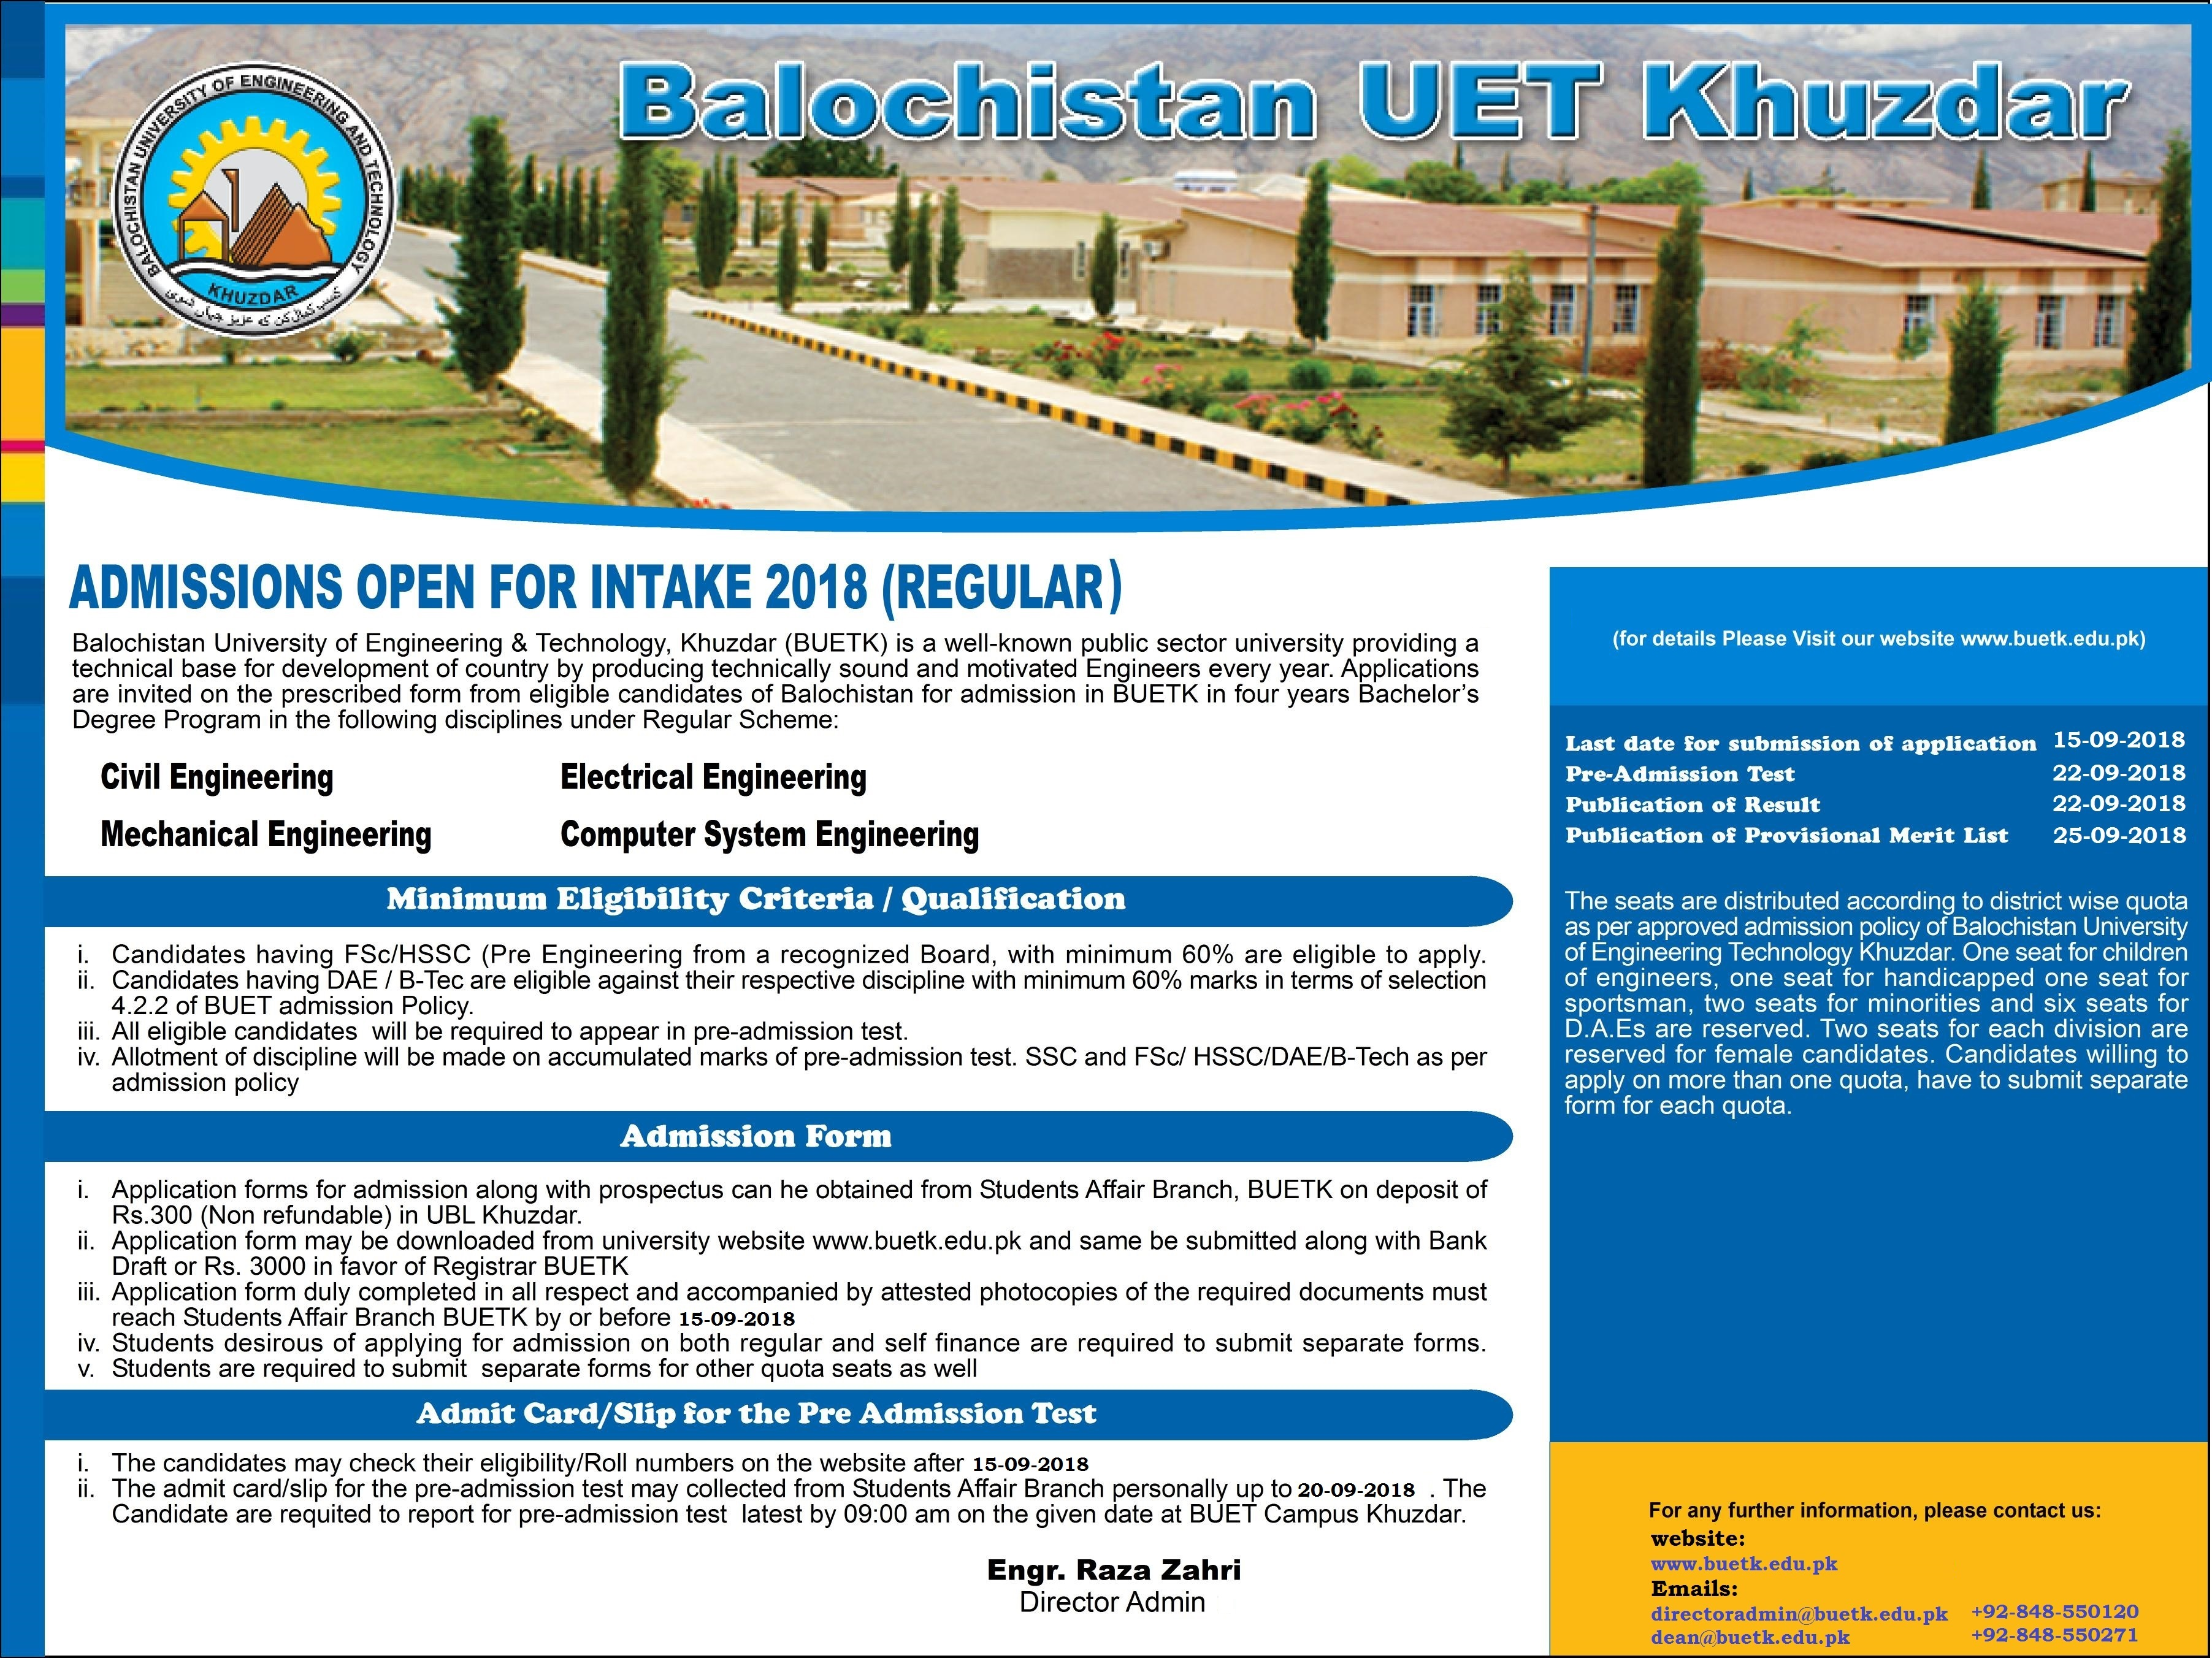 Balochistan University of Engineering BUET Khuzdar Admission 2018